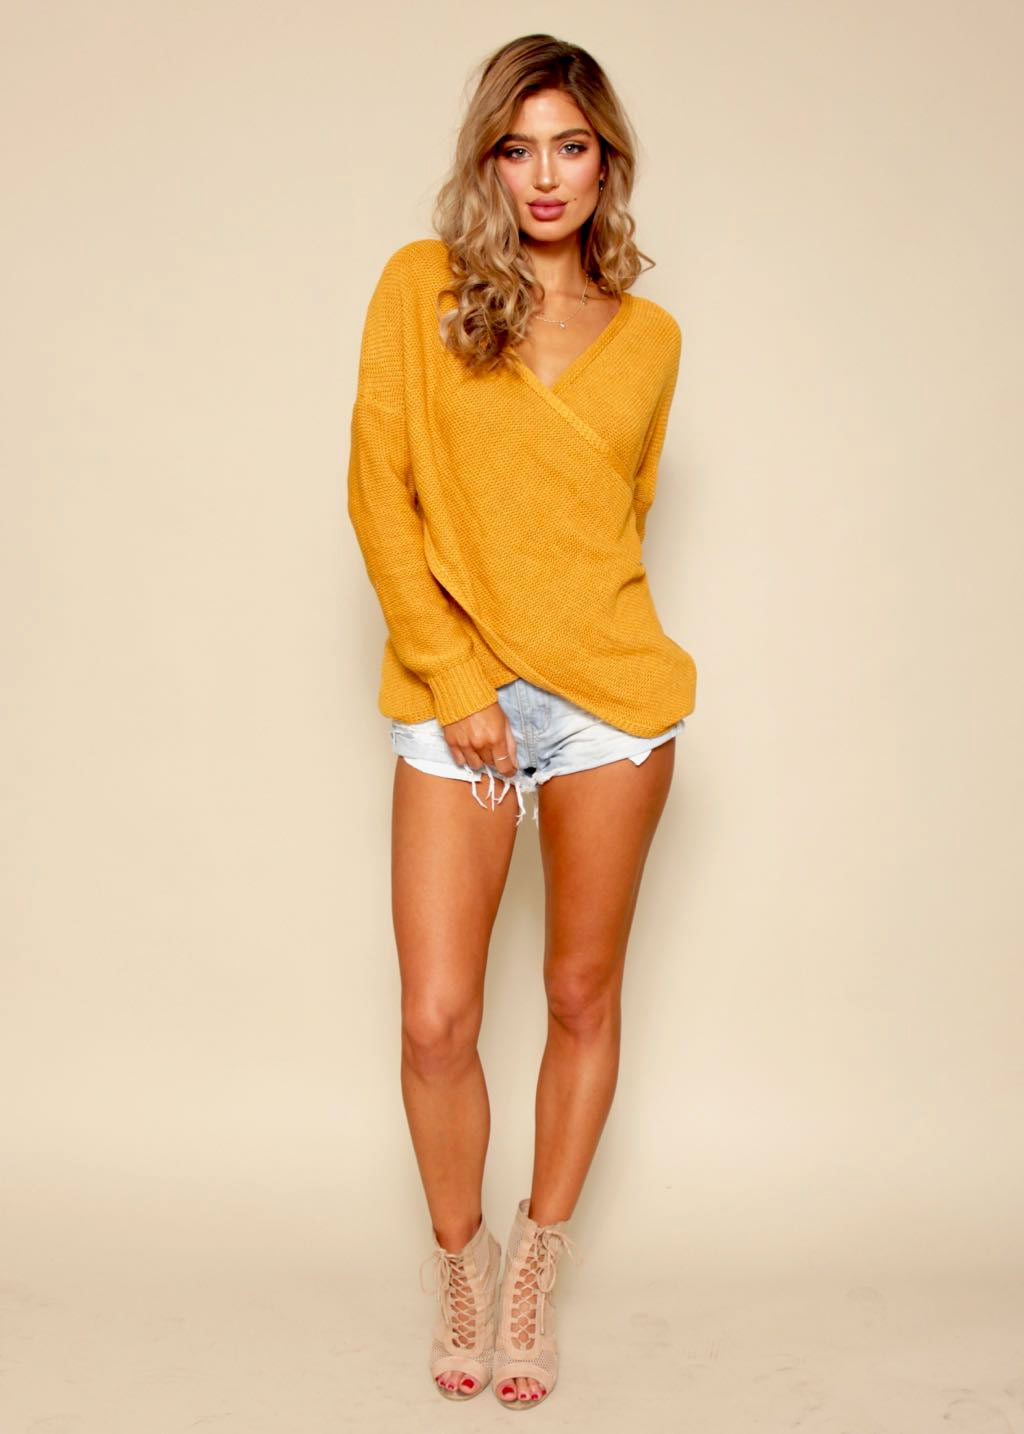 Sweet Caroline Crossover Sweater - Mustard